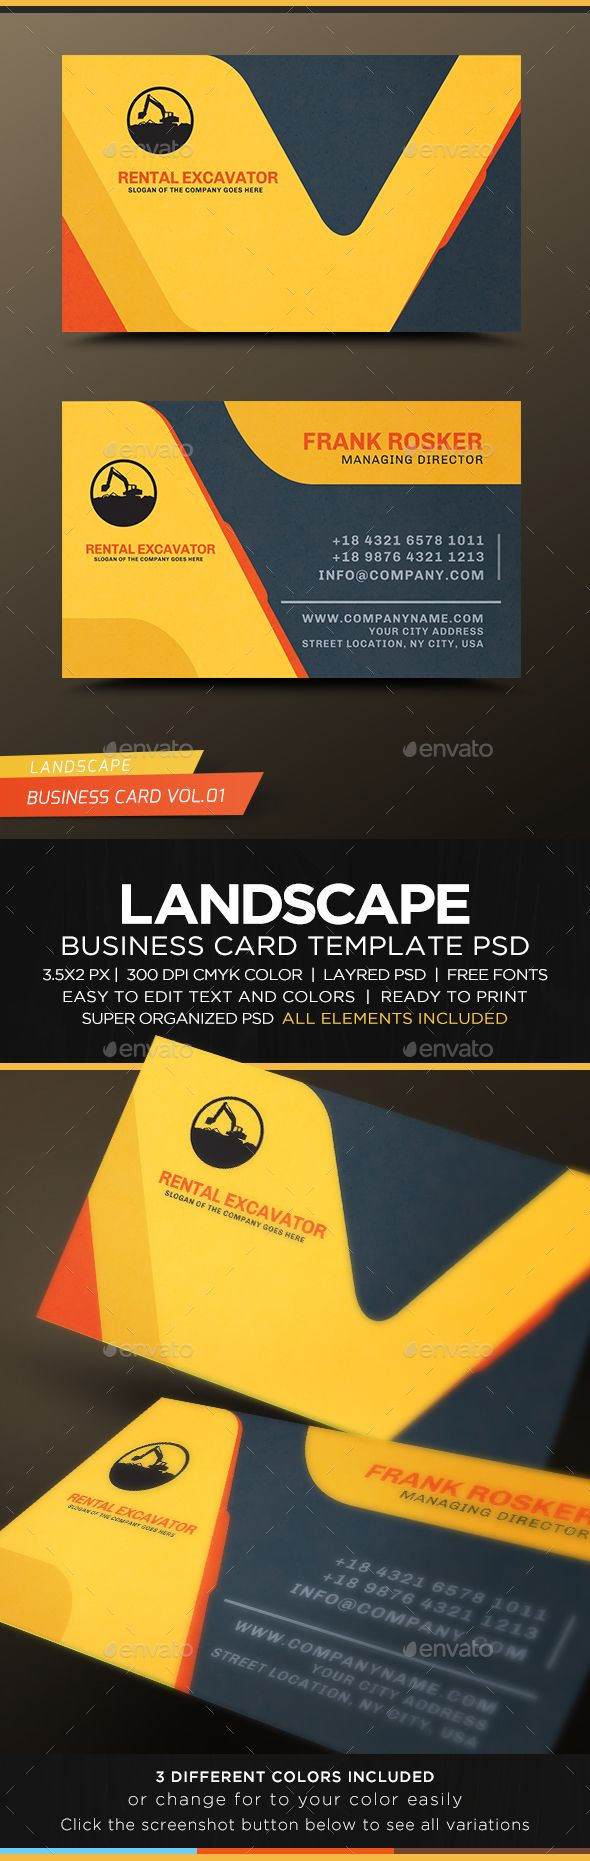 189 best Business card images on Pinterest | Business card design ...